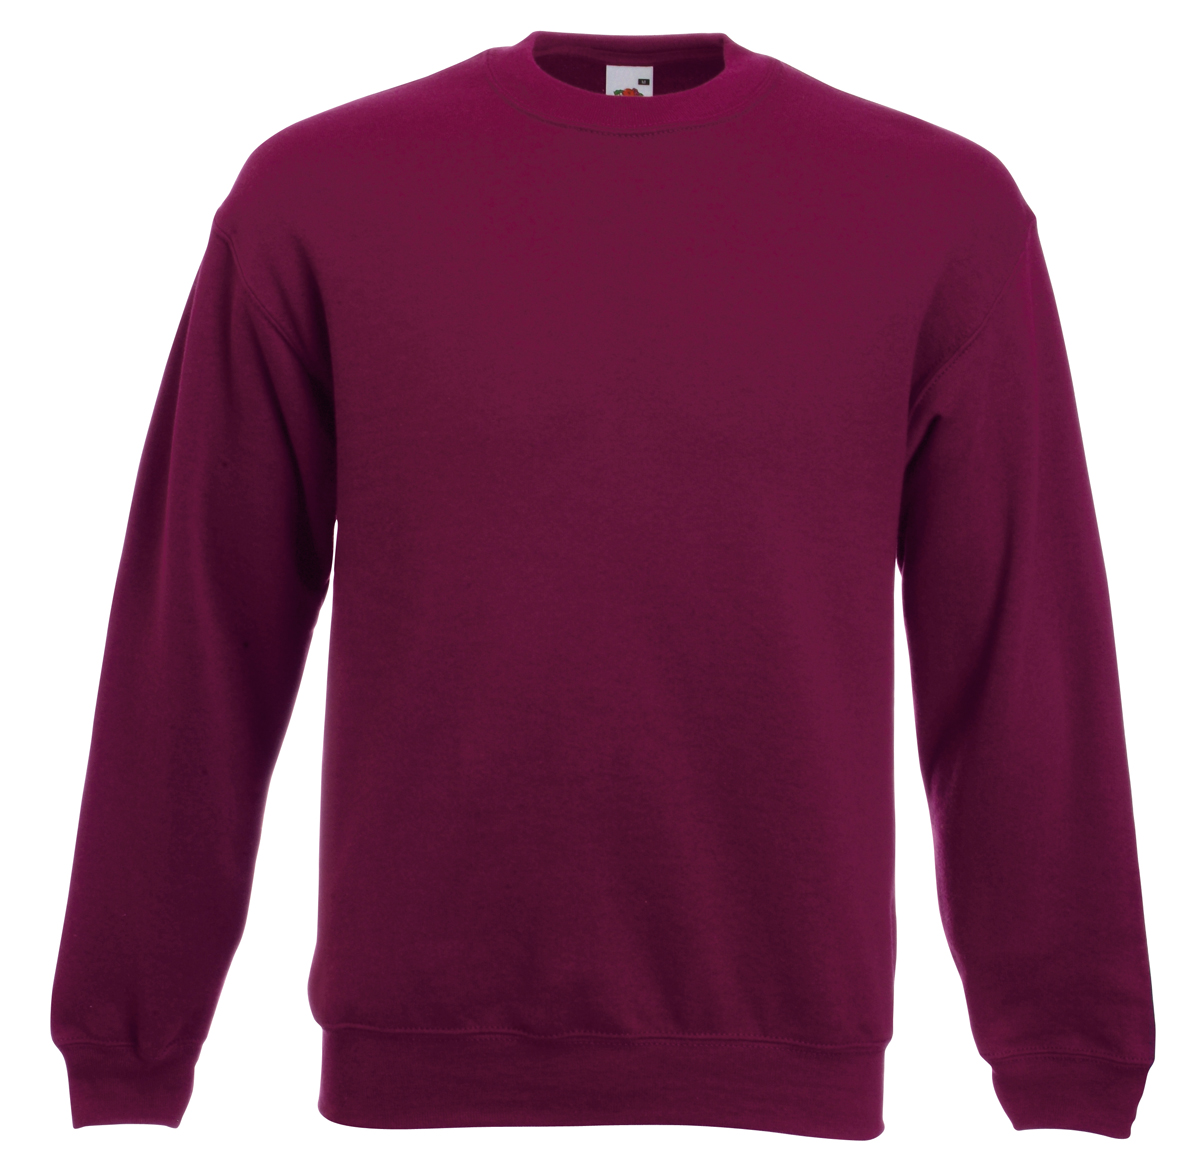 Fruit of the Loom Set-In Sweater 622020 Burgundy